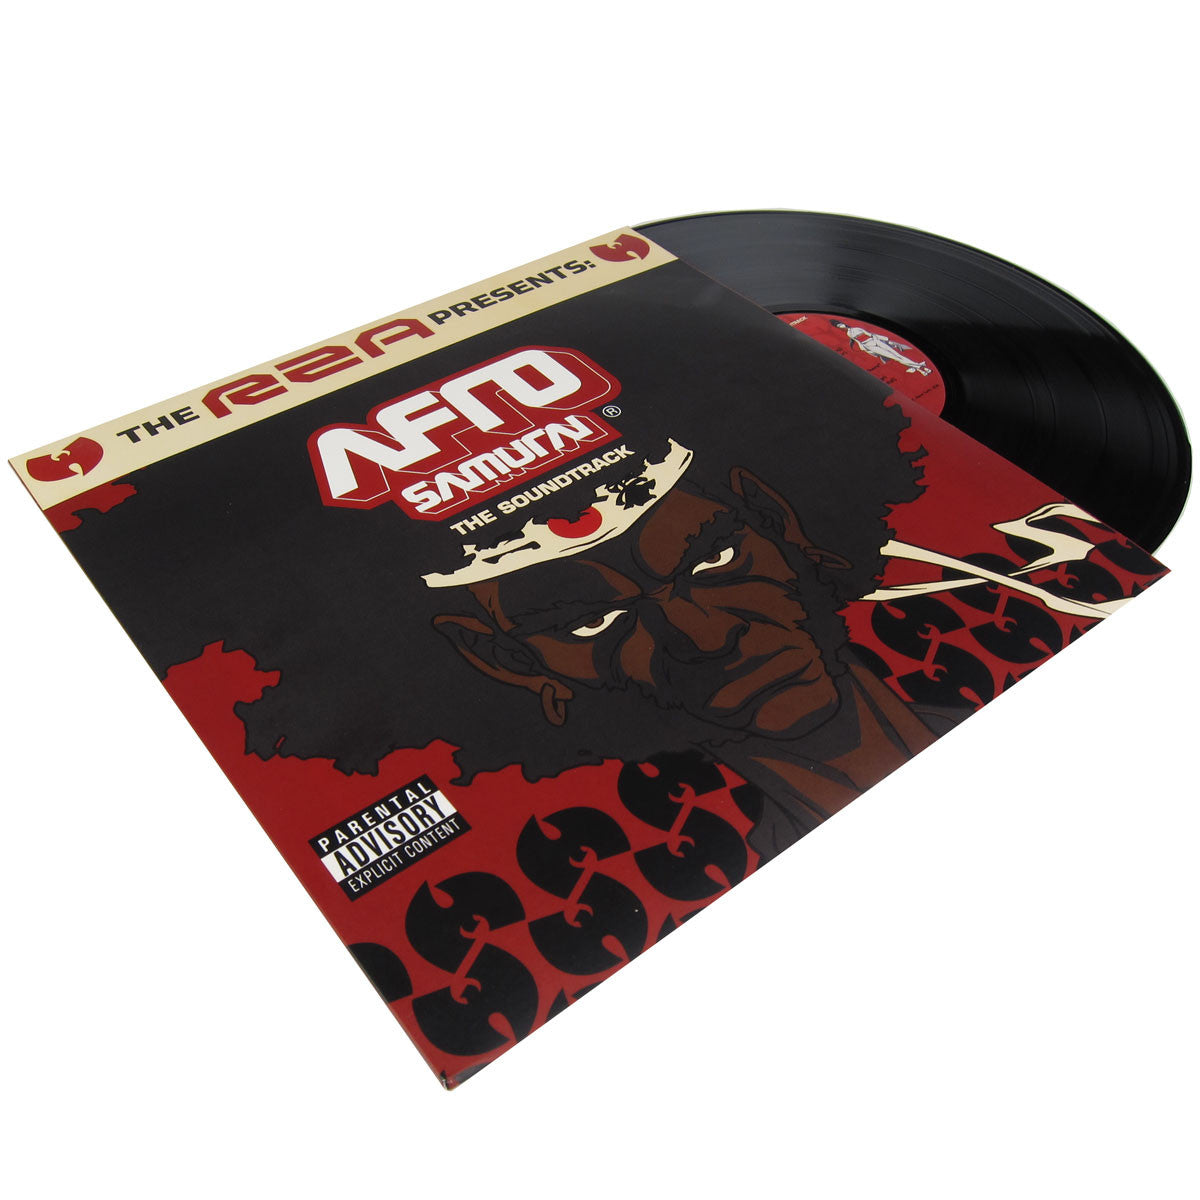 RZA: Afro Samurai The Soundtrack (Q-Tip, Talib Kweli) Vinyl 2LP